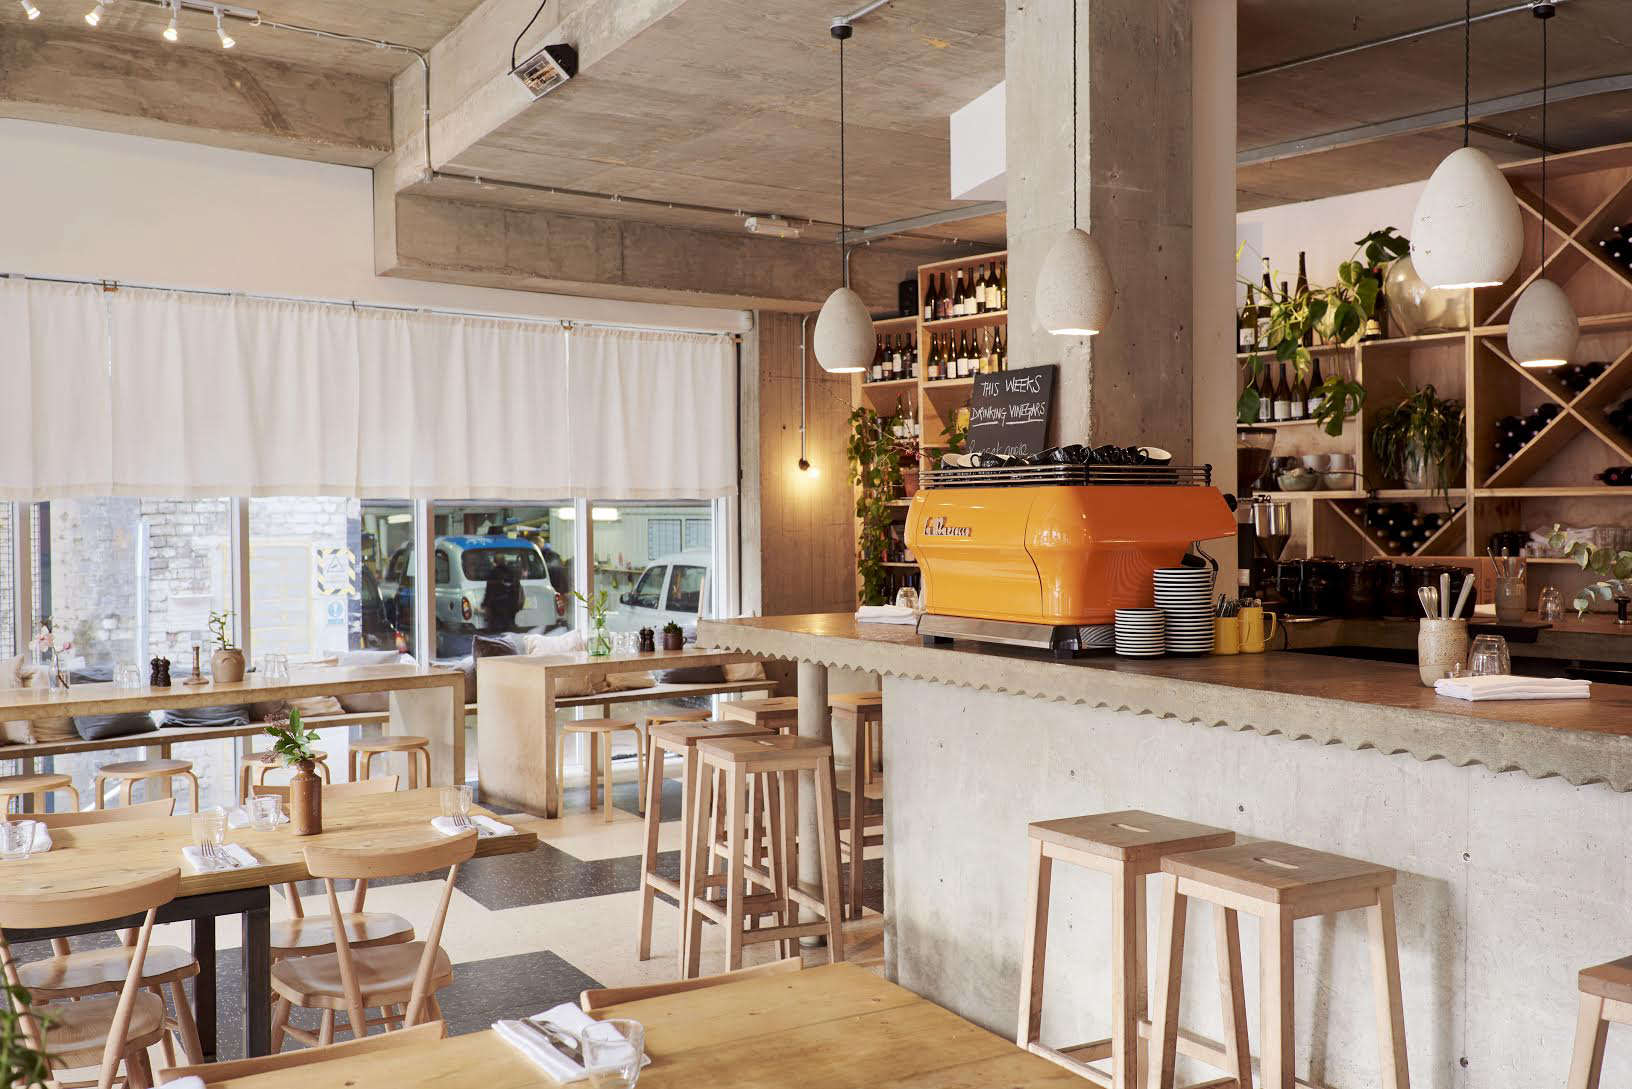 Restaurant Visit Communal Tables and Biodynamic Wines at Rawduck in Hackney raw duck london interior